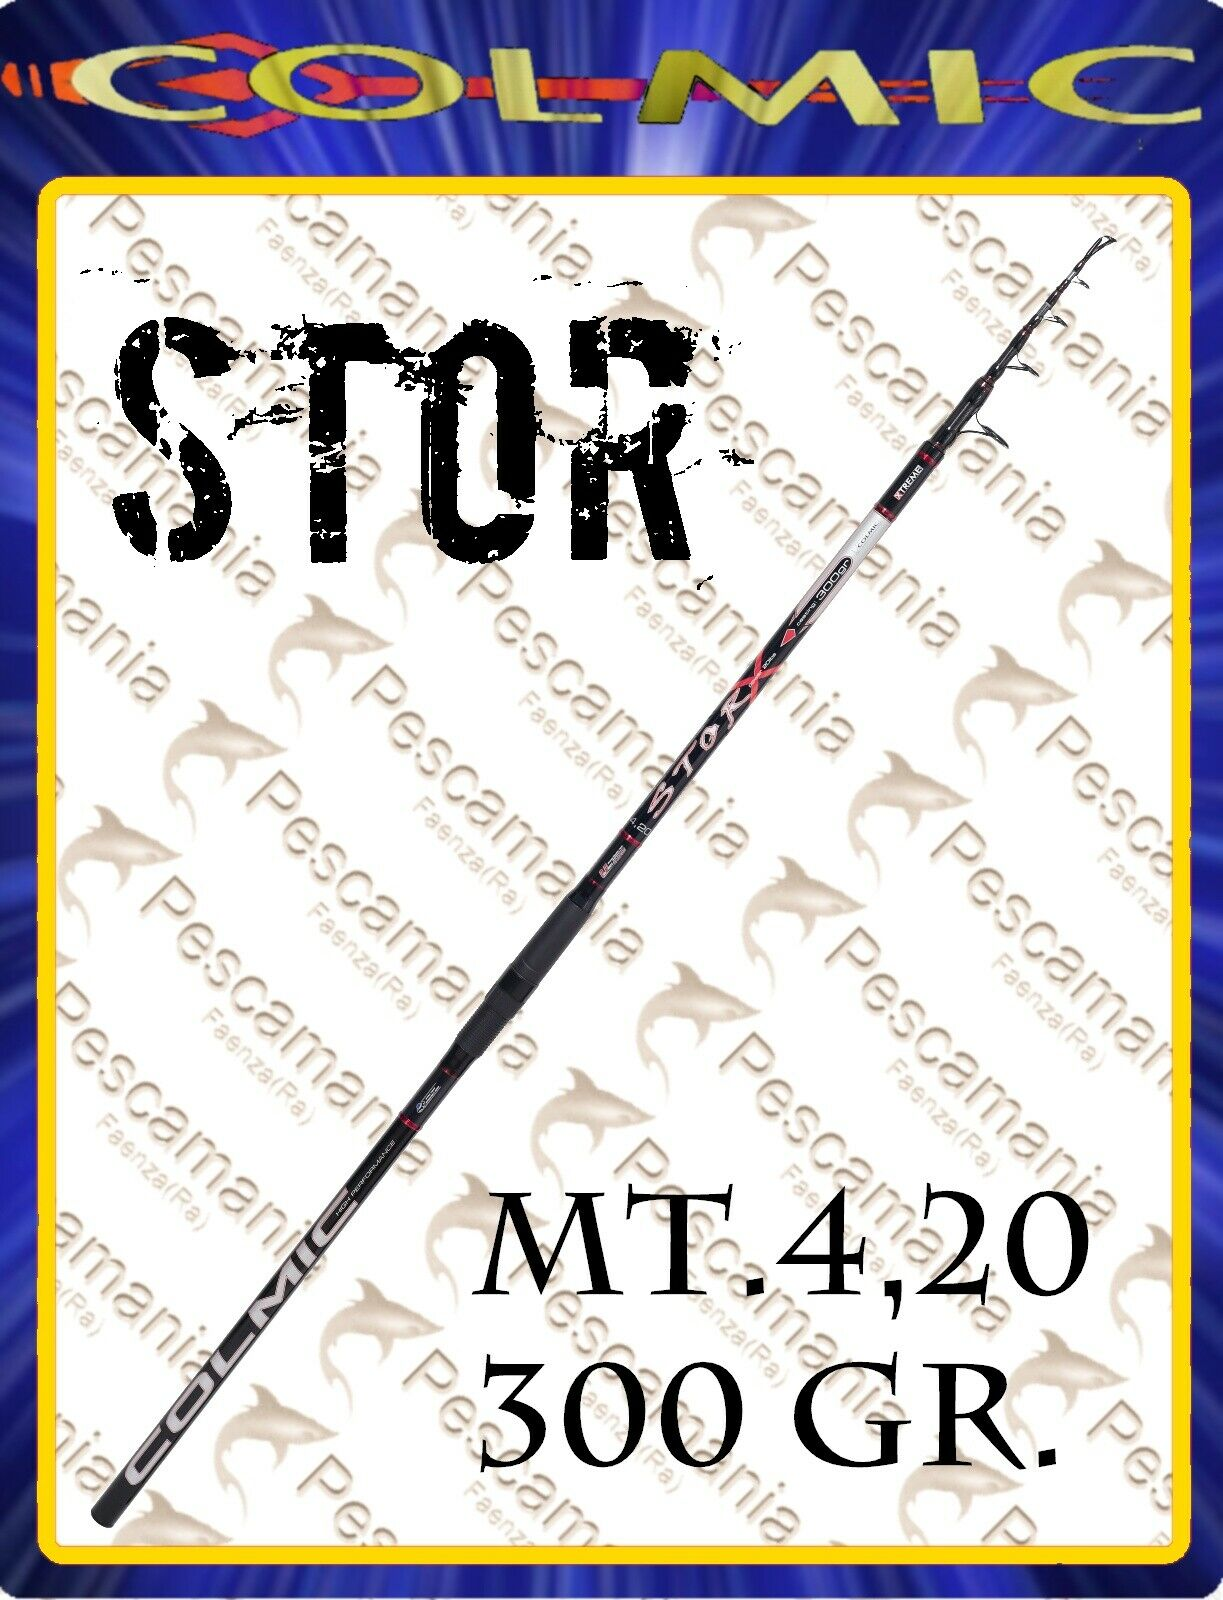 Canna Colmic Stor bolognese casting mt 4.20 gr 300 carbonio Storione, siluro